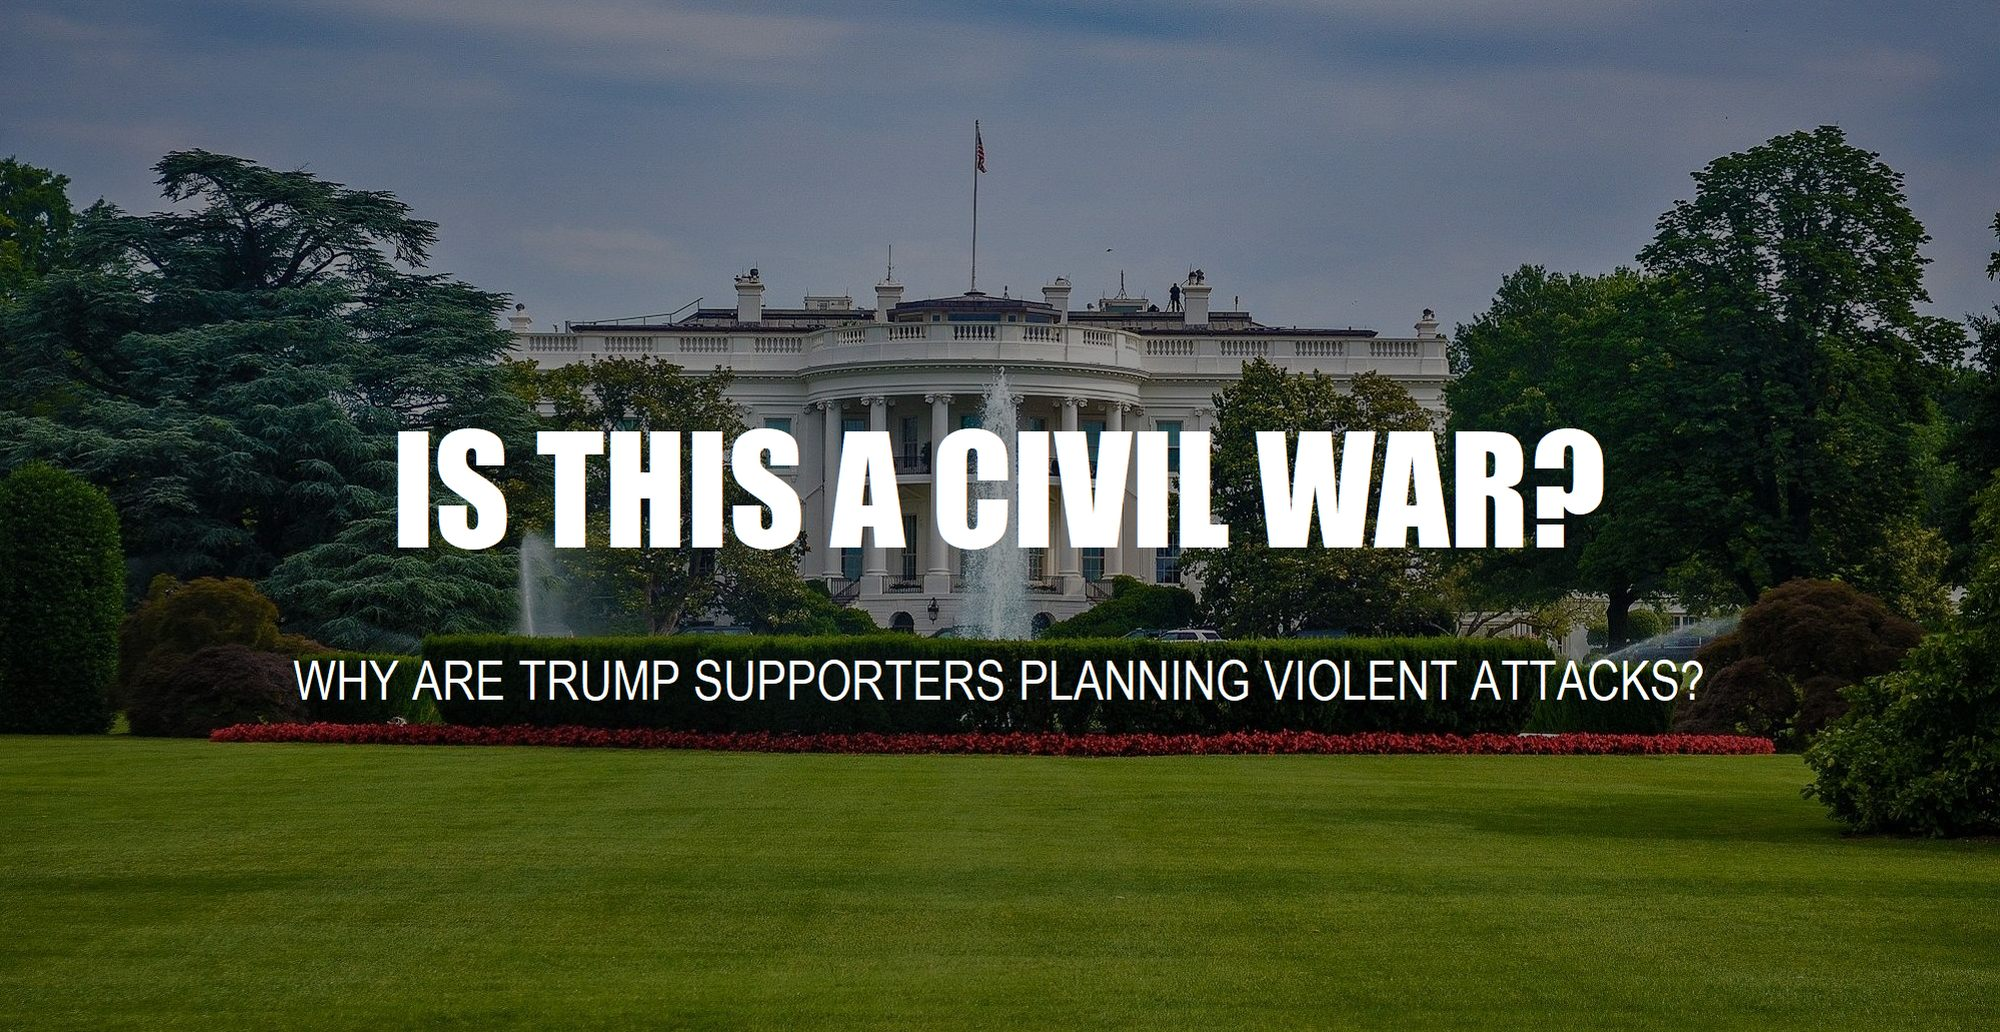 White-house-is-this-a-civil-war-is-trump-planning-an-attack-are-trump-supporters-planning-violent-attack-on-inauguration